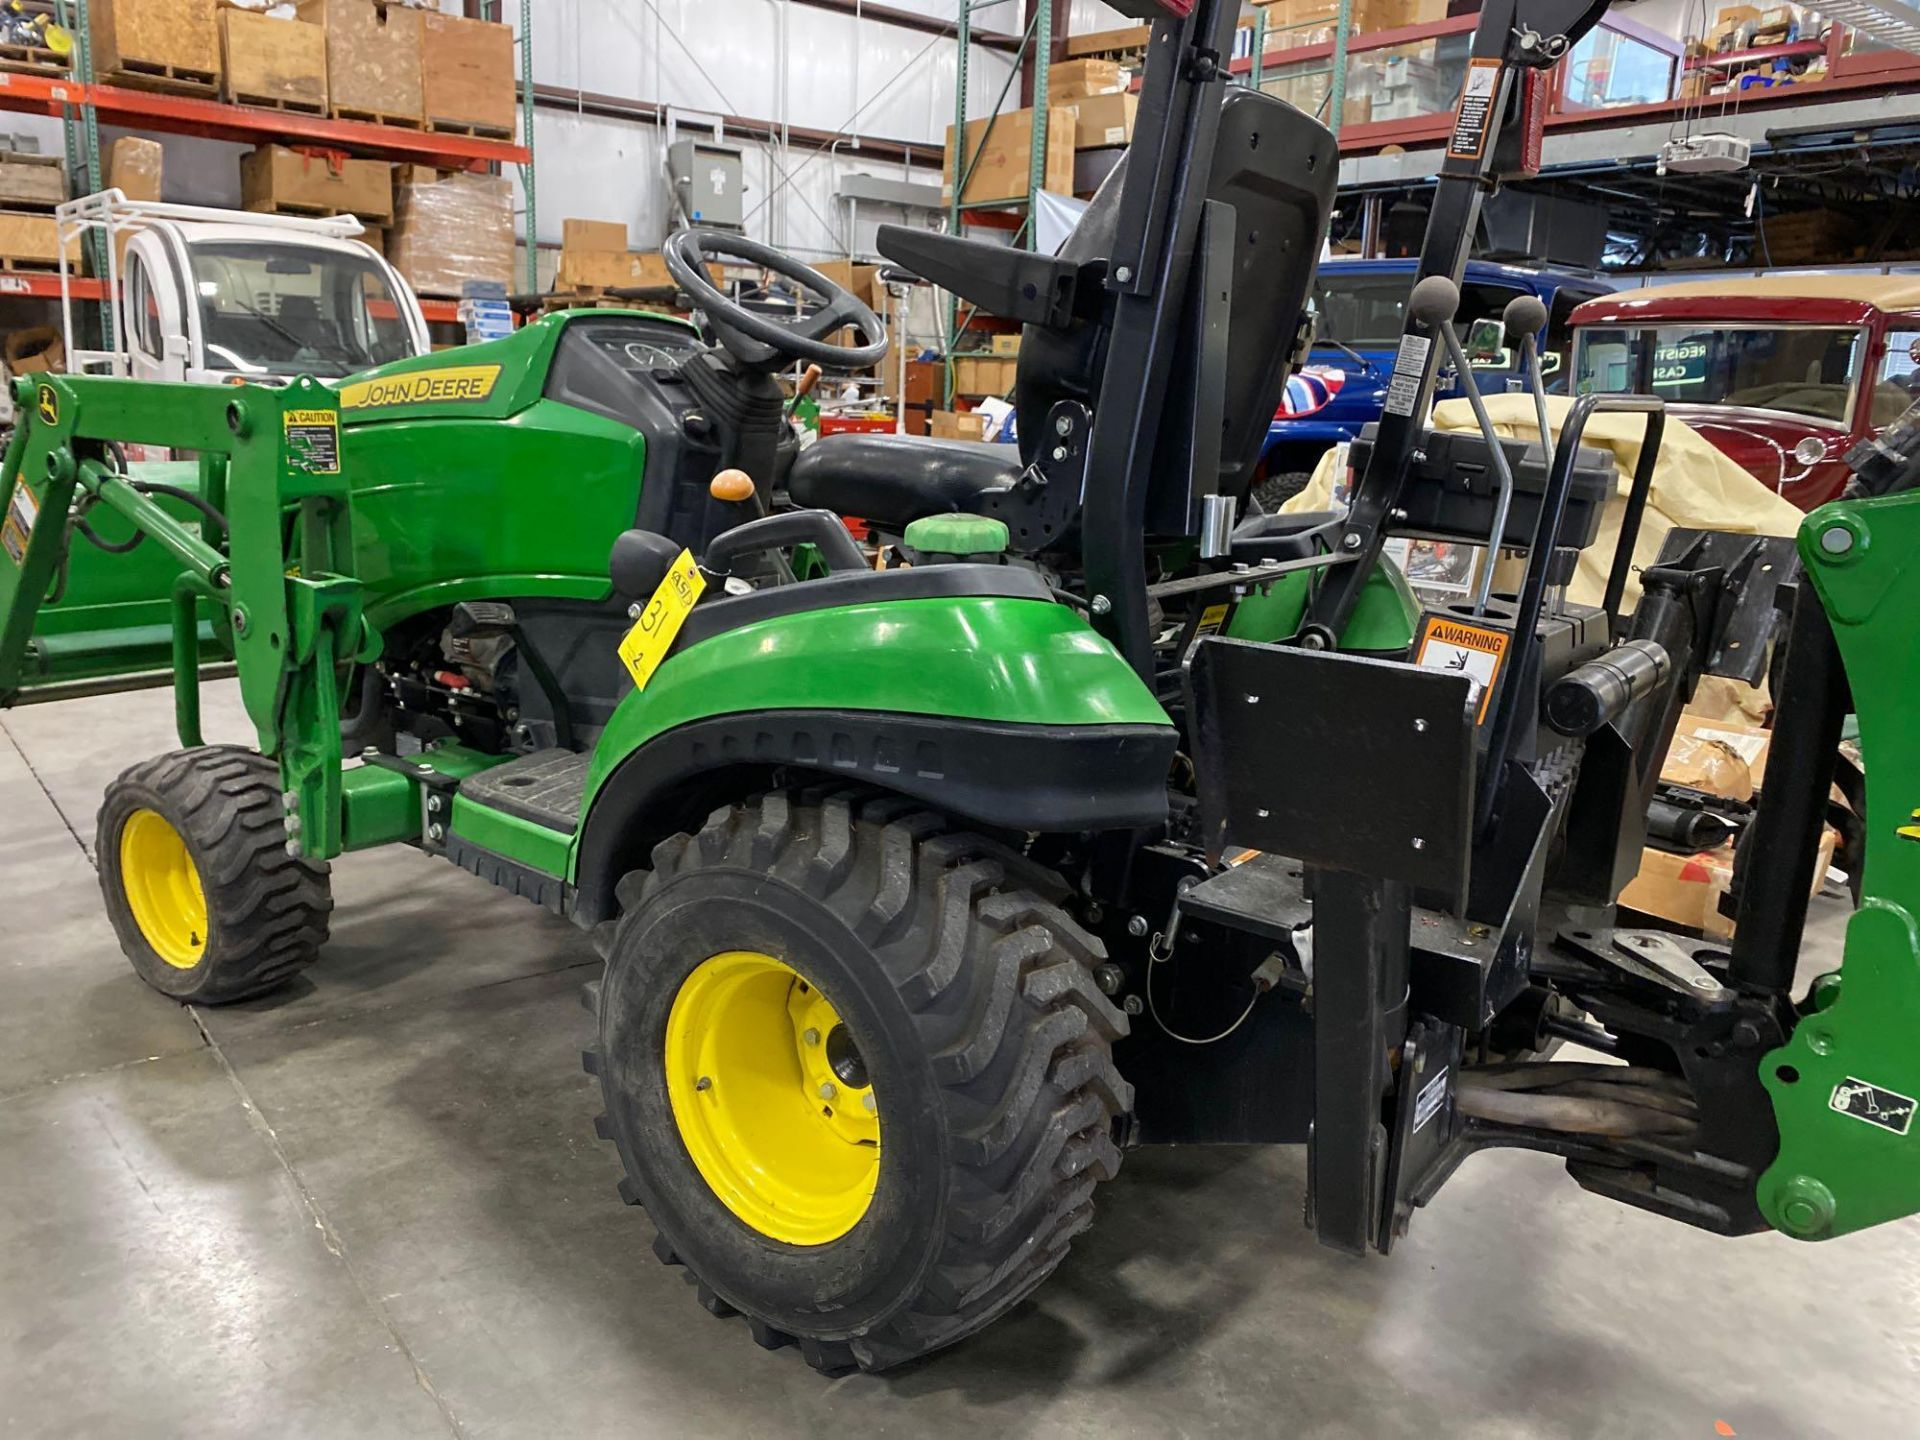 Lot 31 - 2016 JOHN DEERE TRACTOR, DIESEL, LOADER, BACKHOE BUCKET, OUT RIGGERS, 4X4, RUNS AND OPERATES